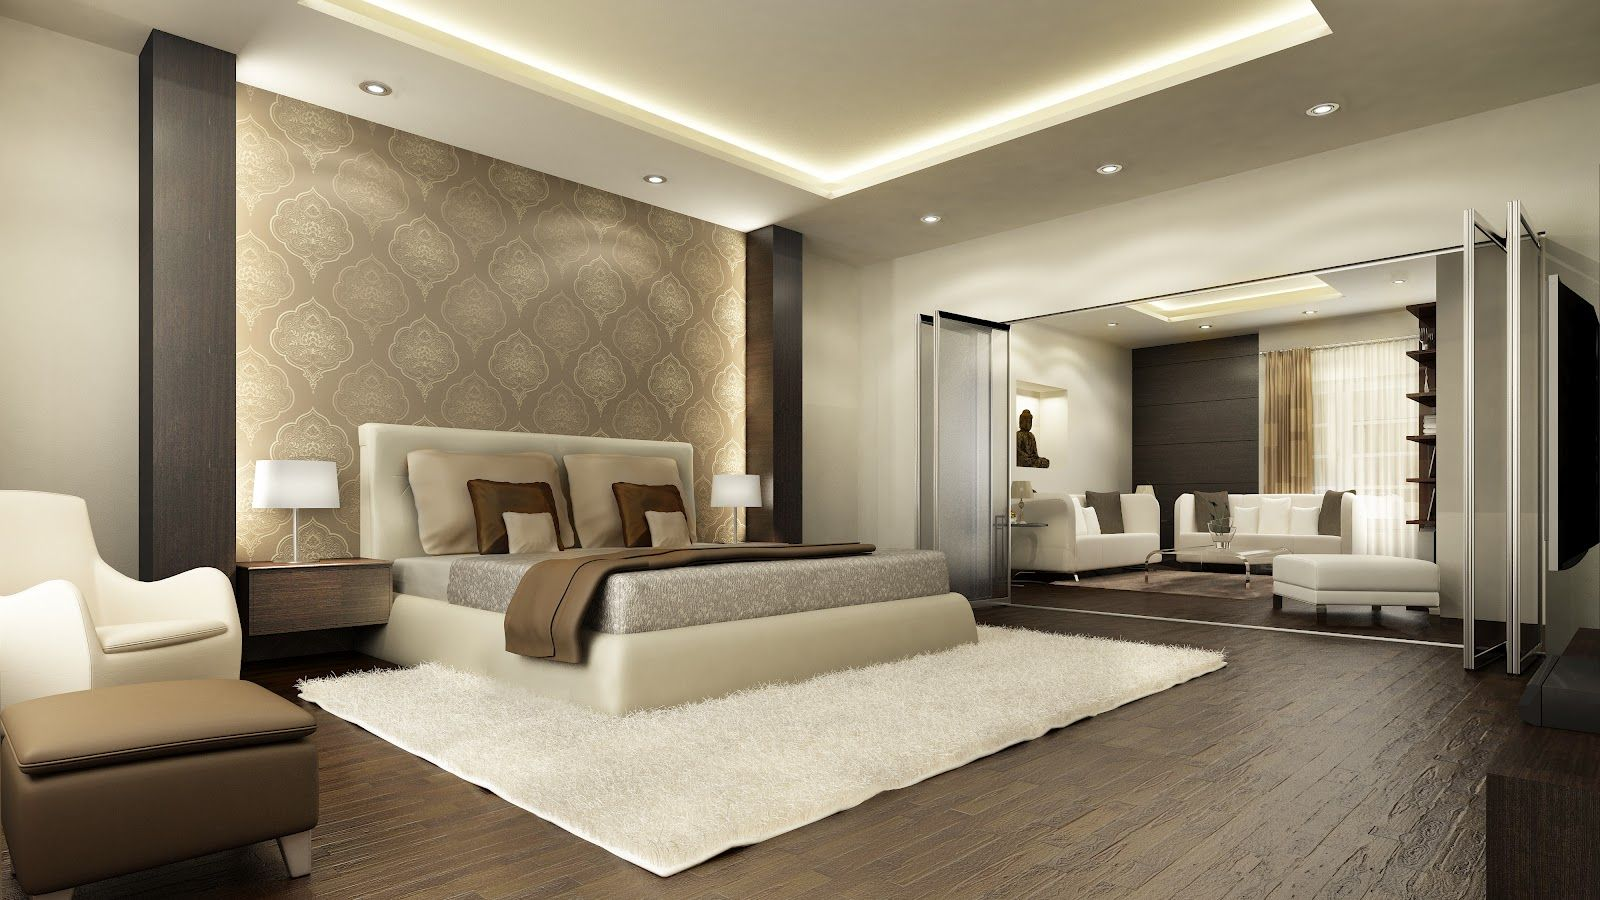 interior design bedroom ideas on a budget - Interior Design Bedroom